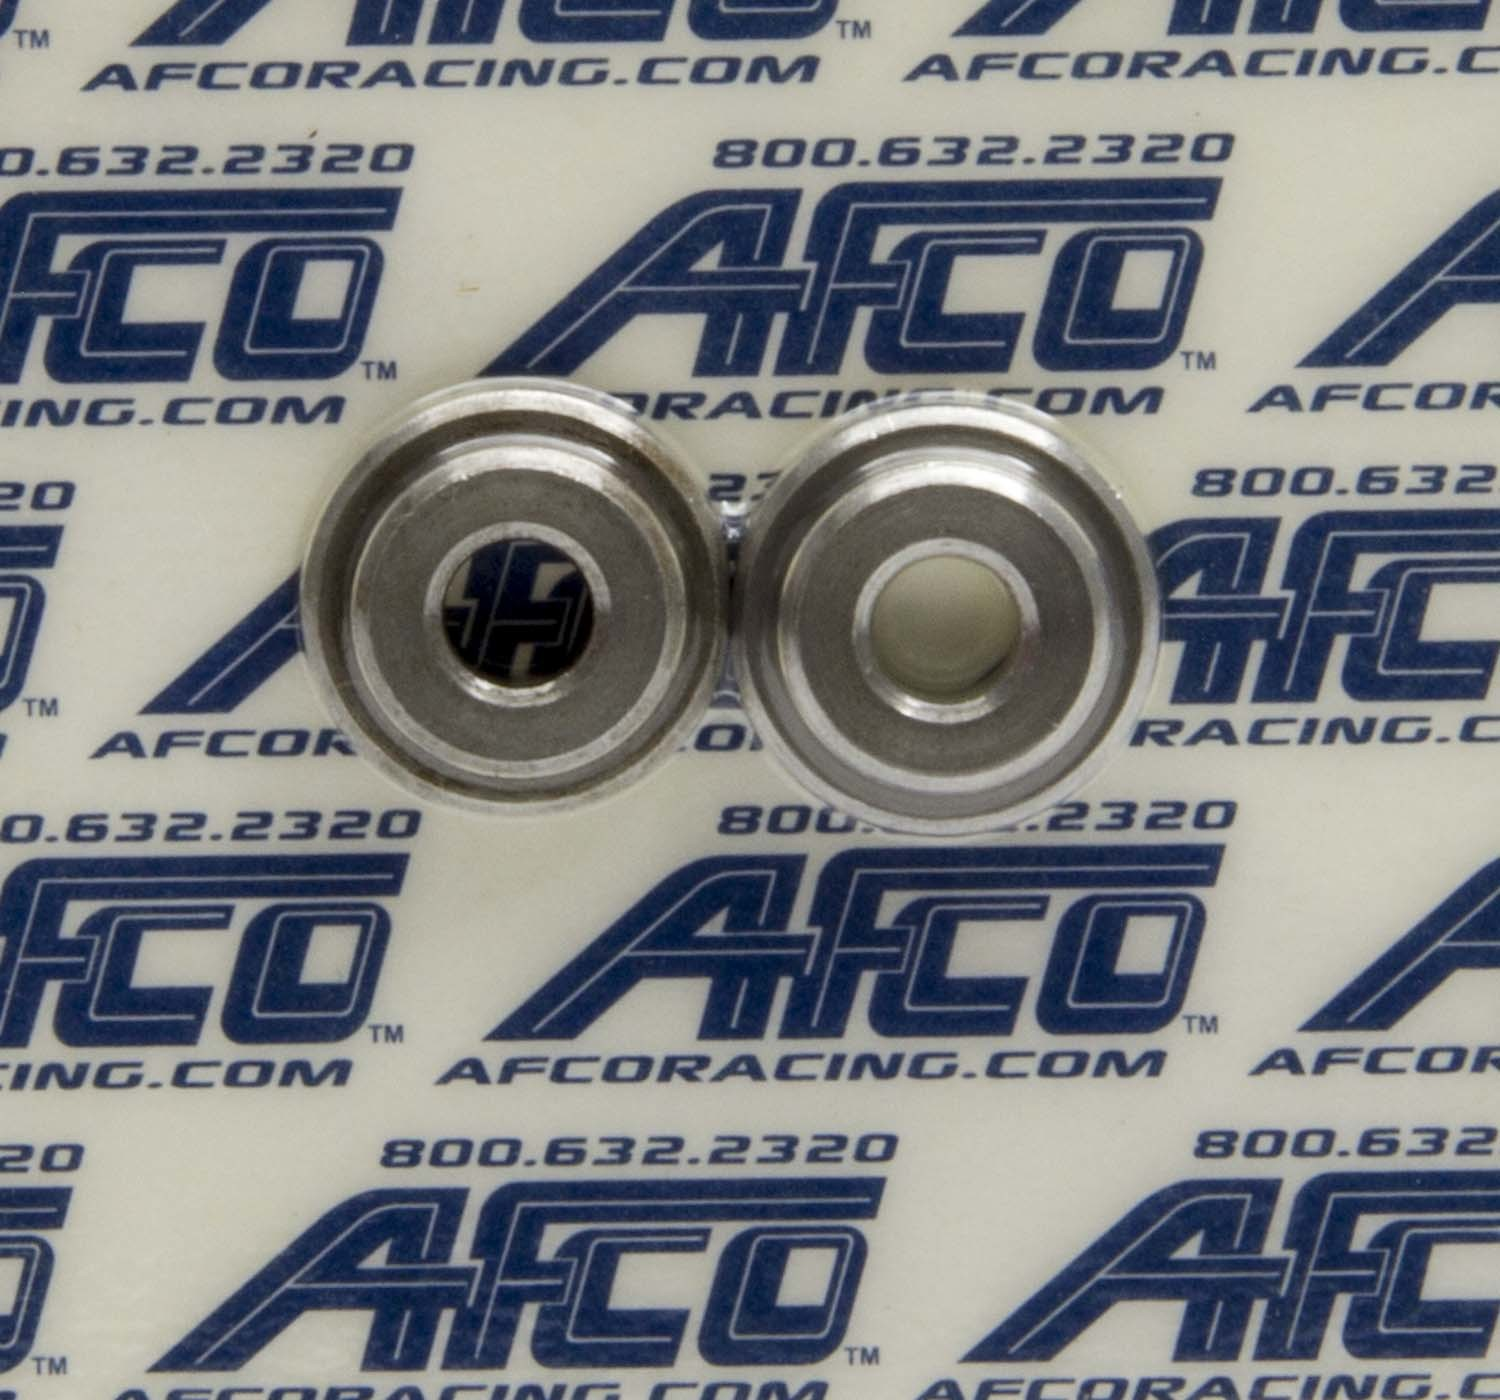 AFCO Racing Products 10174 Throttle Linkage Bushing, 2 Piece, 1/2 in Mounting Diameter, Steel, Natural, Universal, Pair